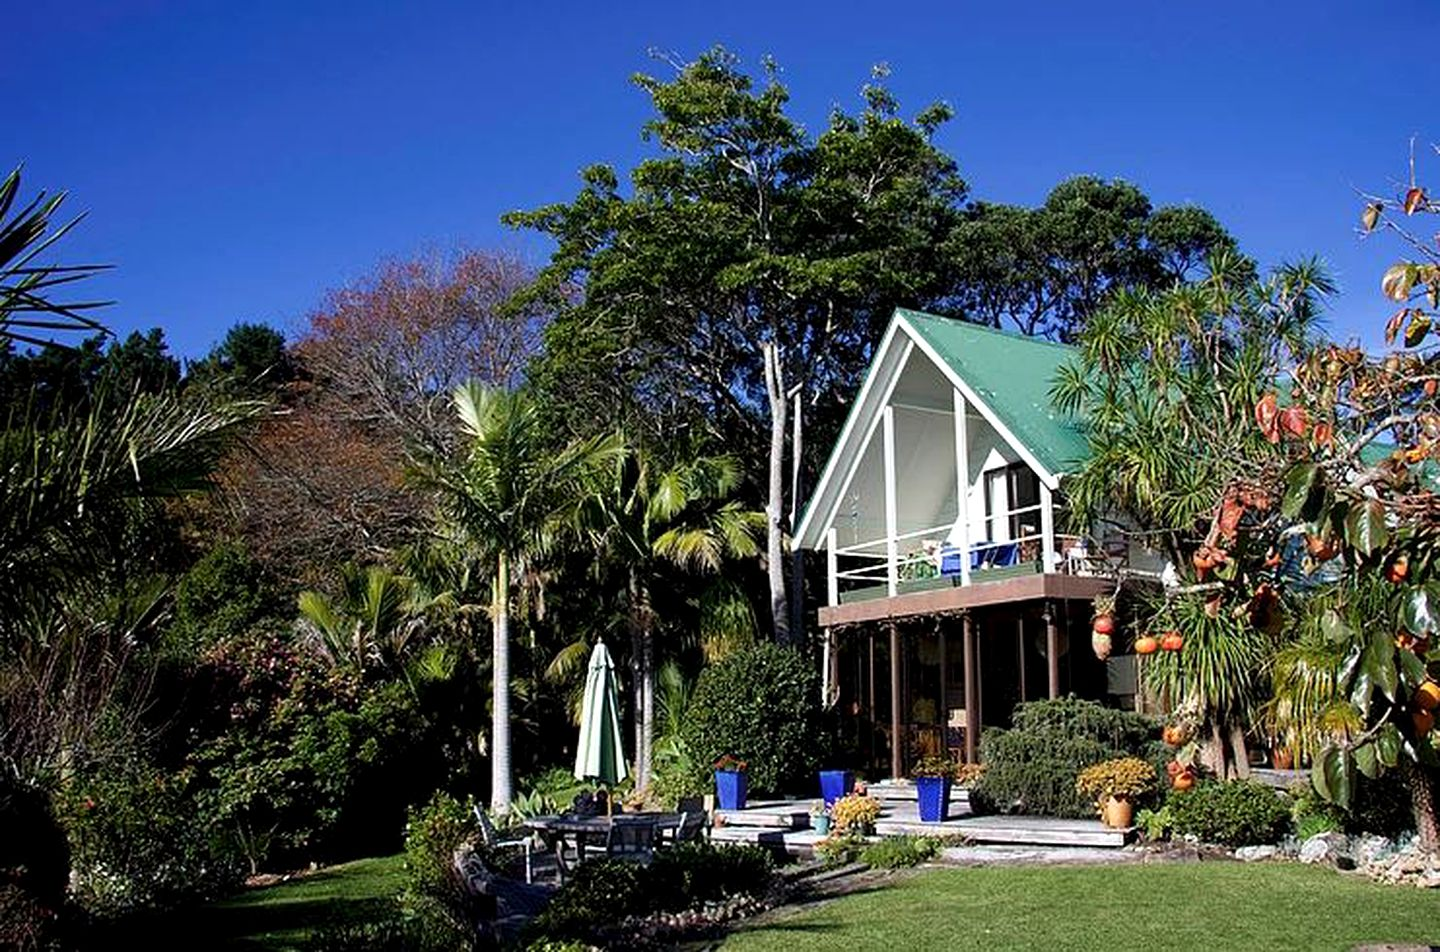 Vacation Rentals (Whitianga, North Island, New Zealand)